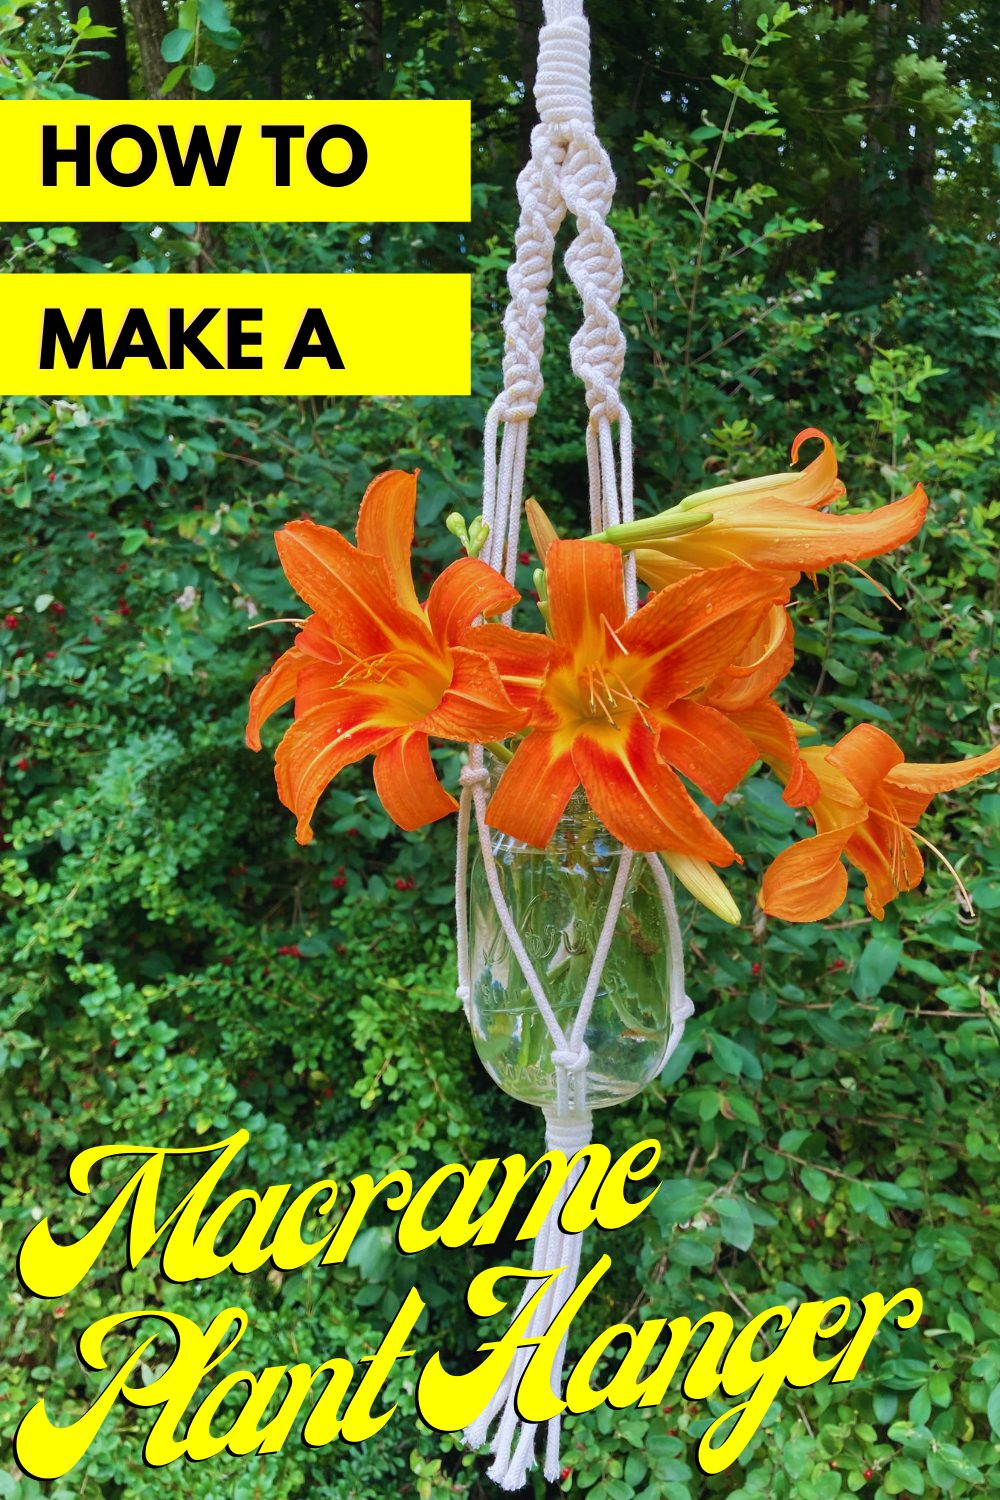 If you are looking for an easy, quick, DIY craft project to add wow factor to your home/garden, try this Macrame Plant Hanger. Head to our site for full tutorial. #DIY #craftideas #craftprojects #DIYcrafts #macrame #handmade #nymelrosefamily via @jennymelrose